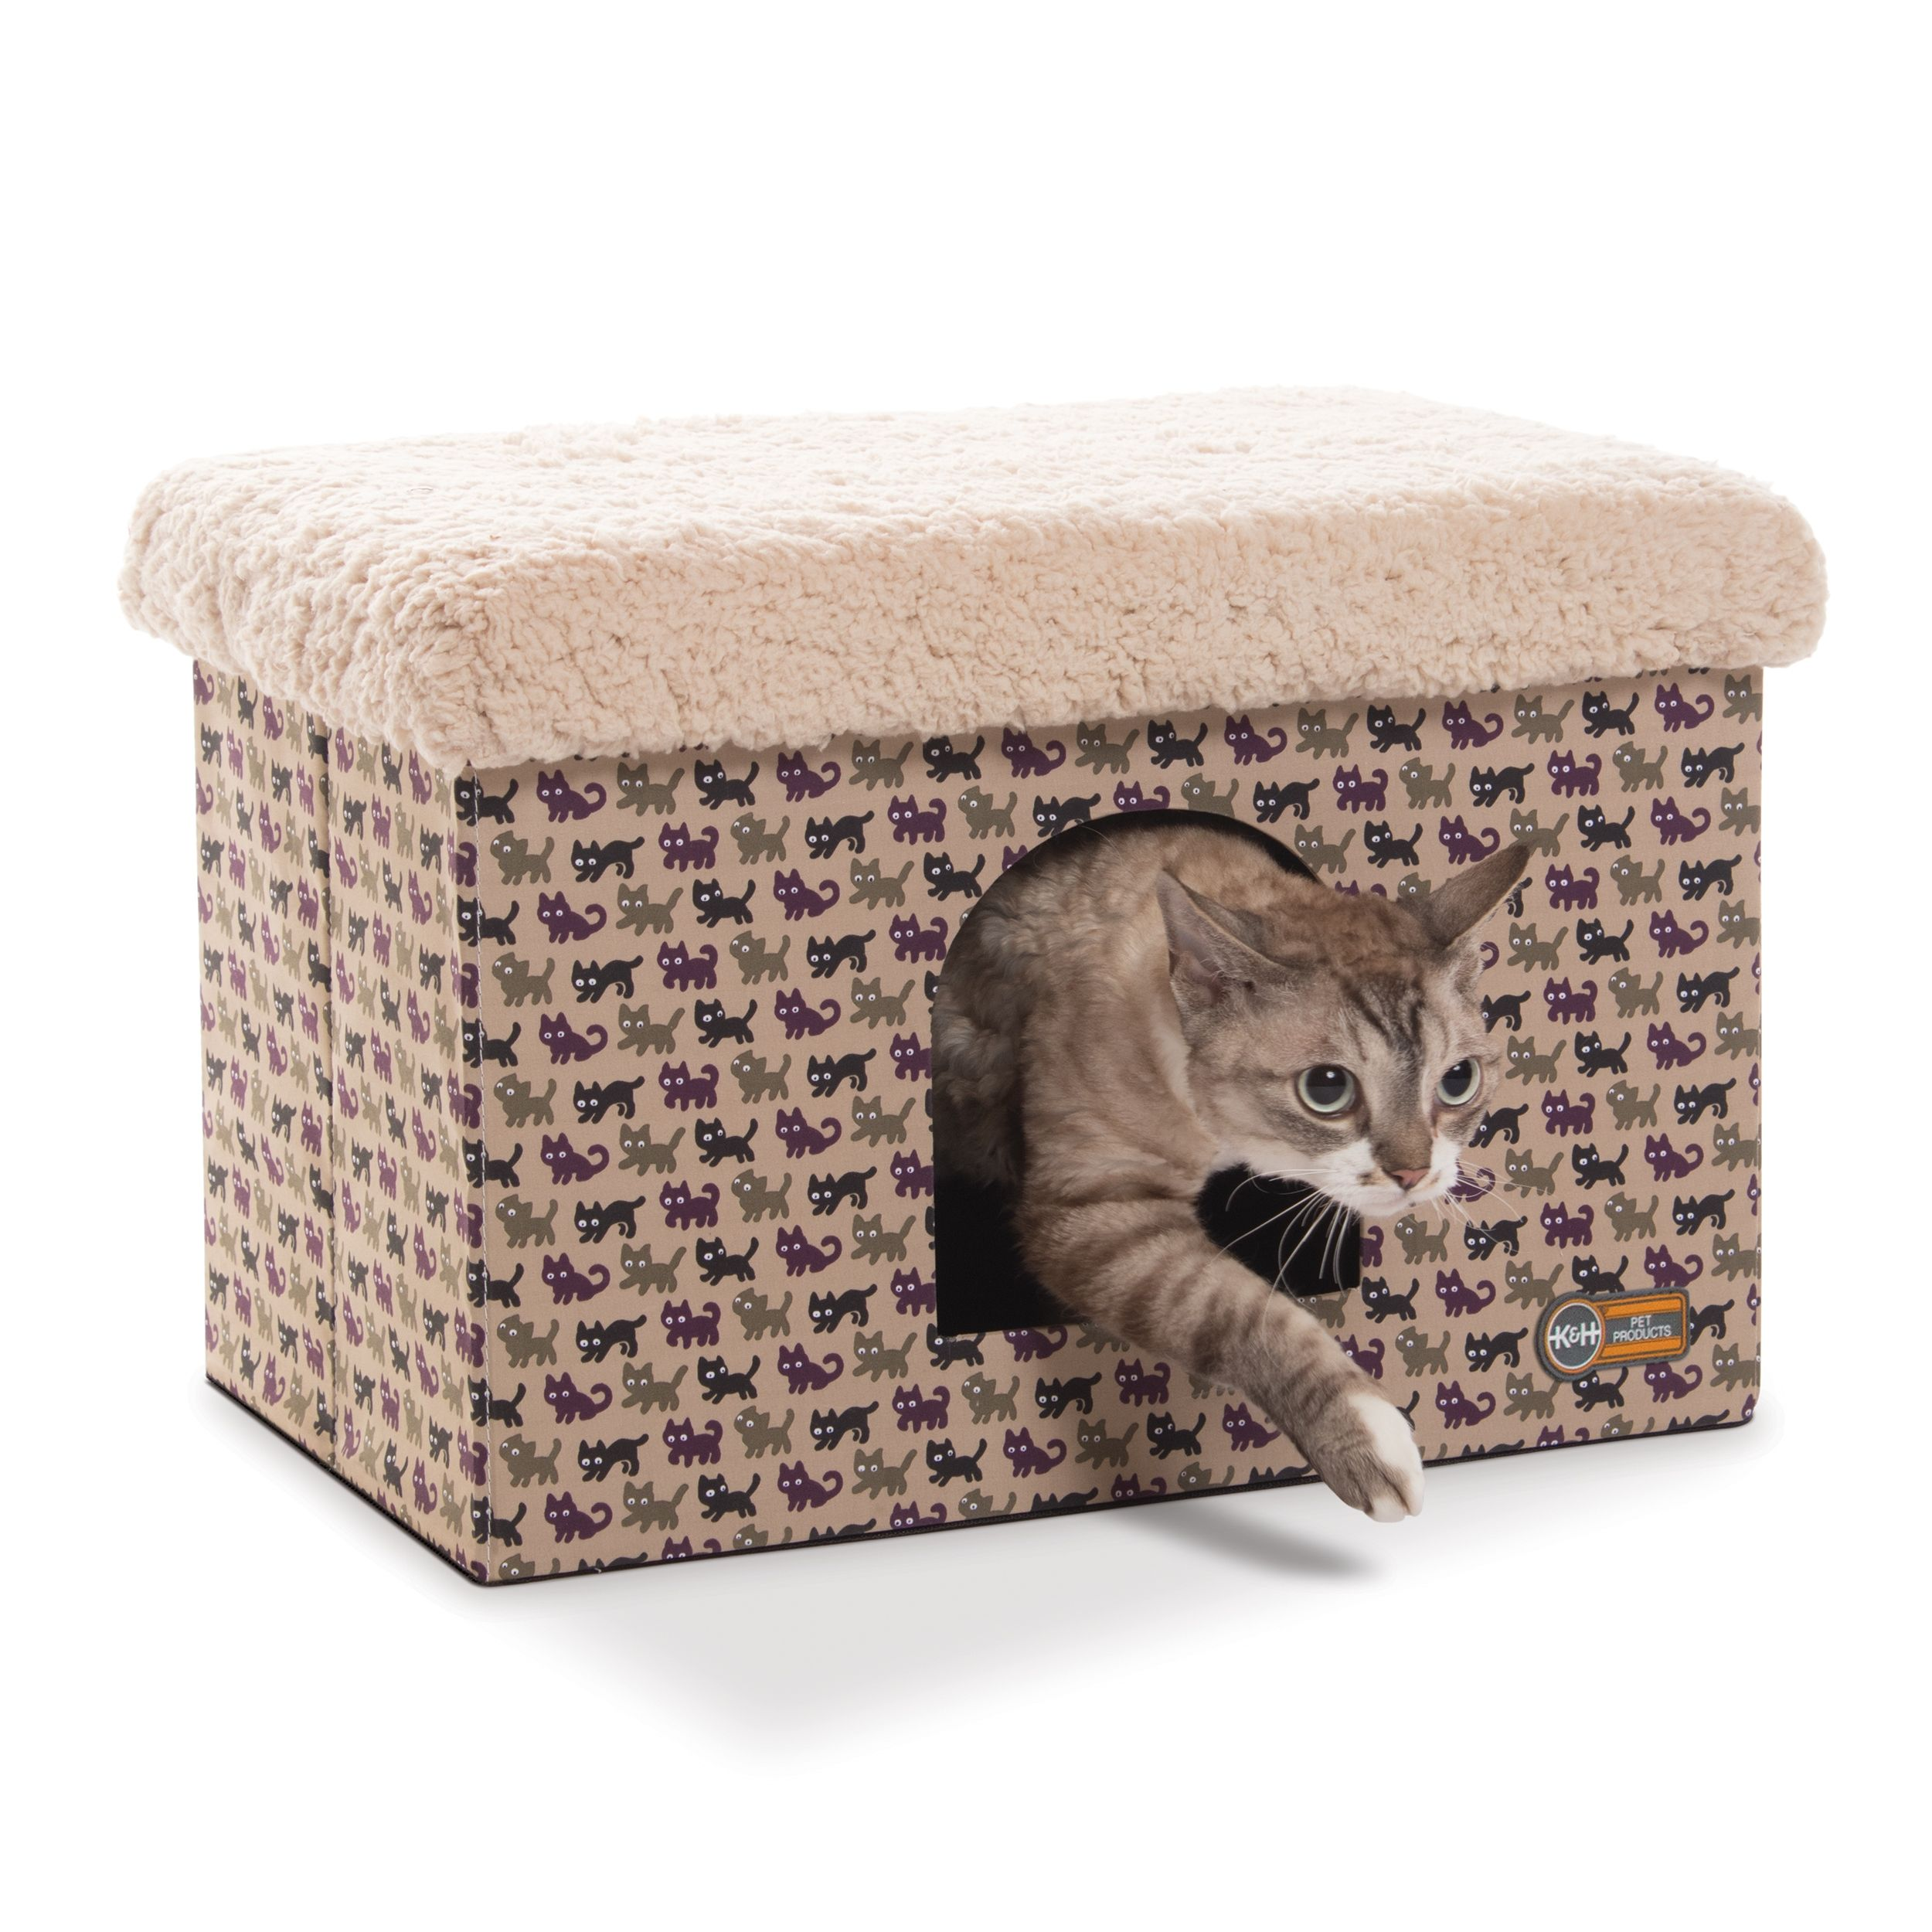 K&H Kitty Bunkhouse™ Heated cat bed, Heated cat house